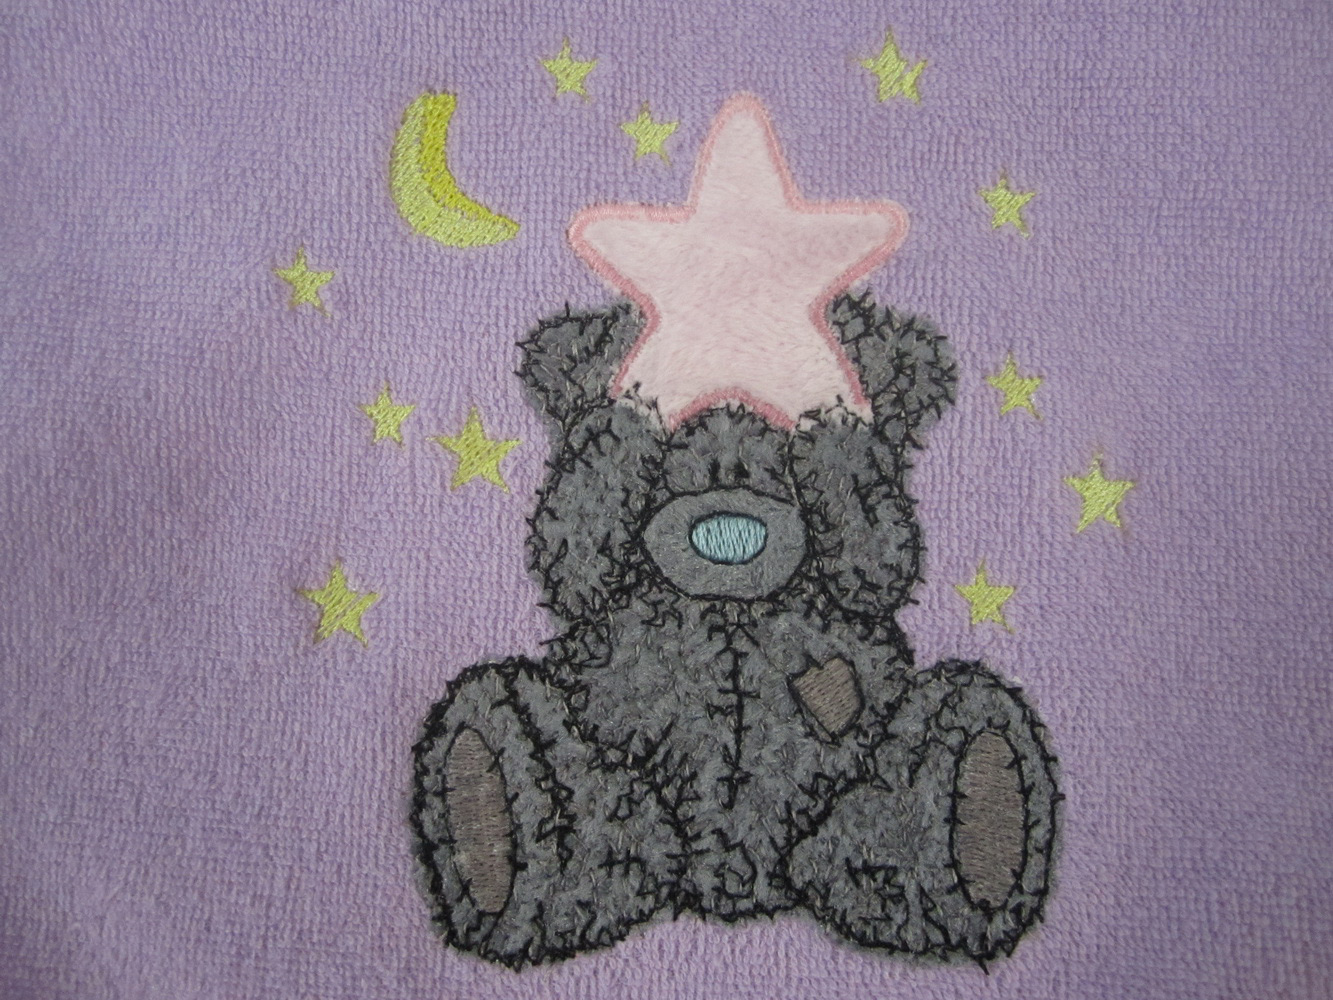 Purple baby bib embroidered with tatty teddy design